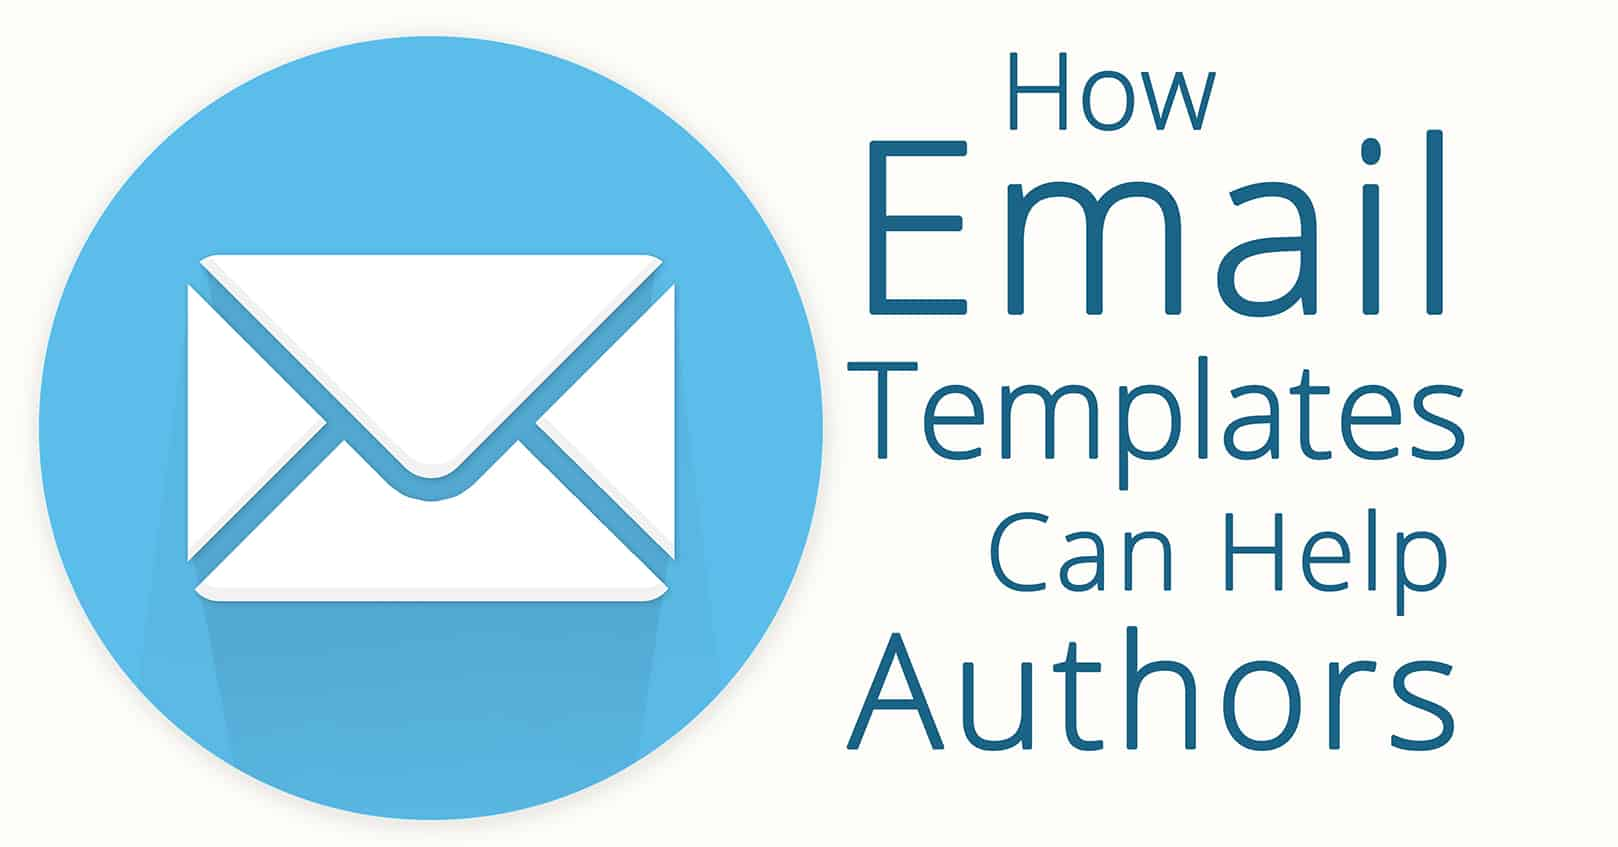 email templates can help authors